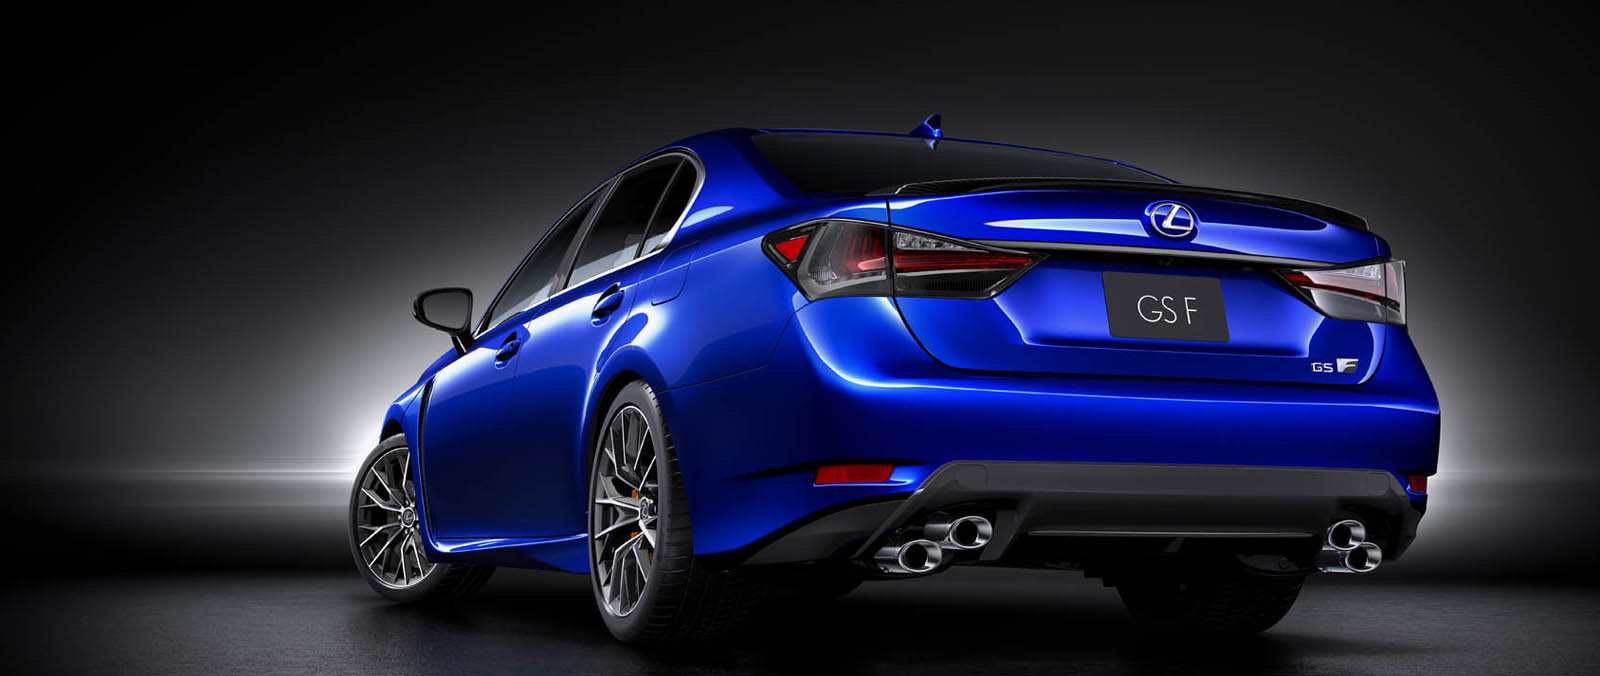 Lexus GS F met high performance V8